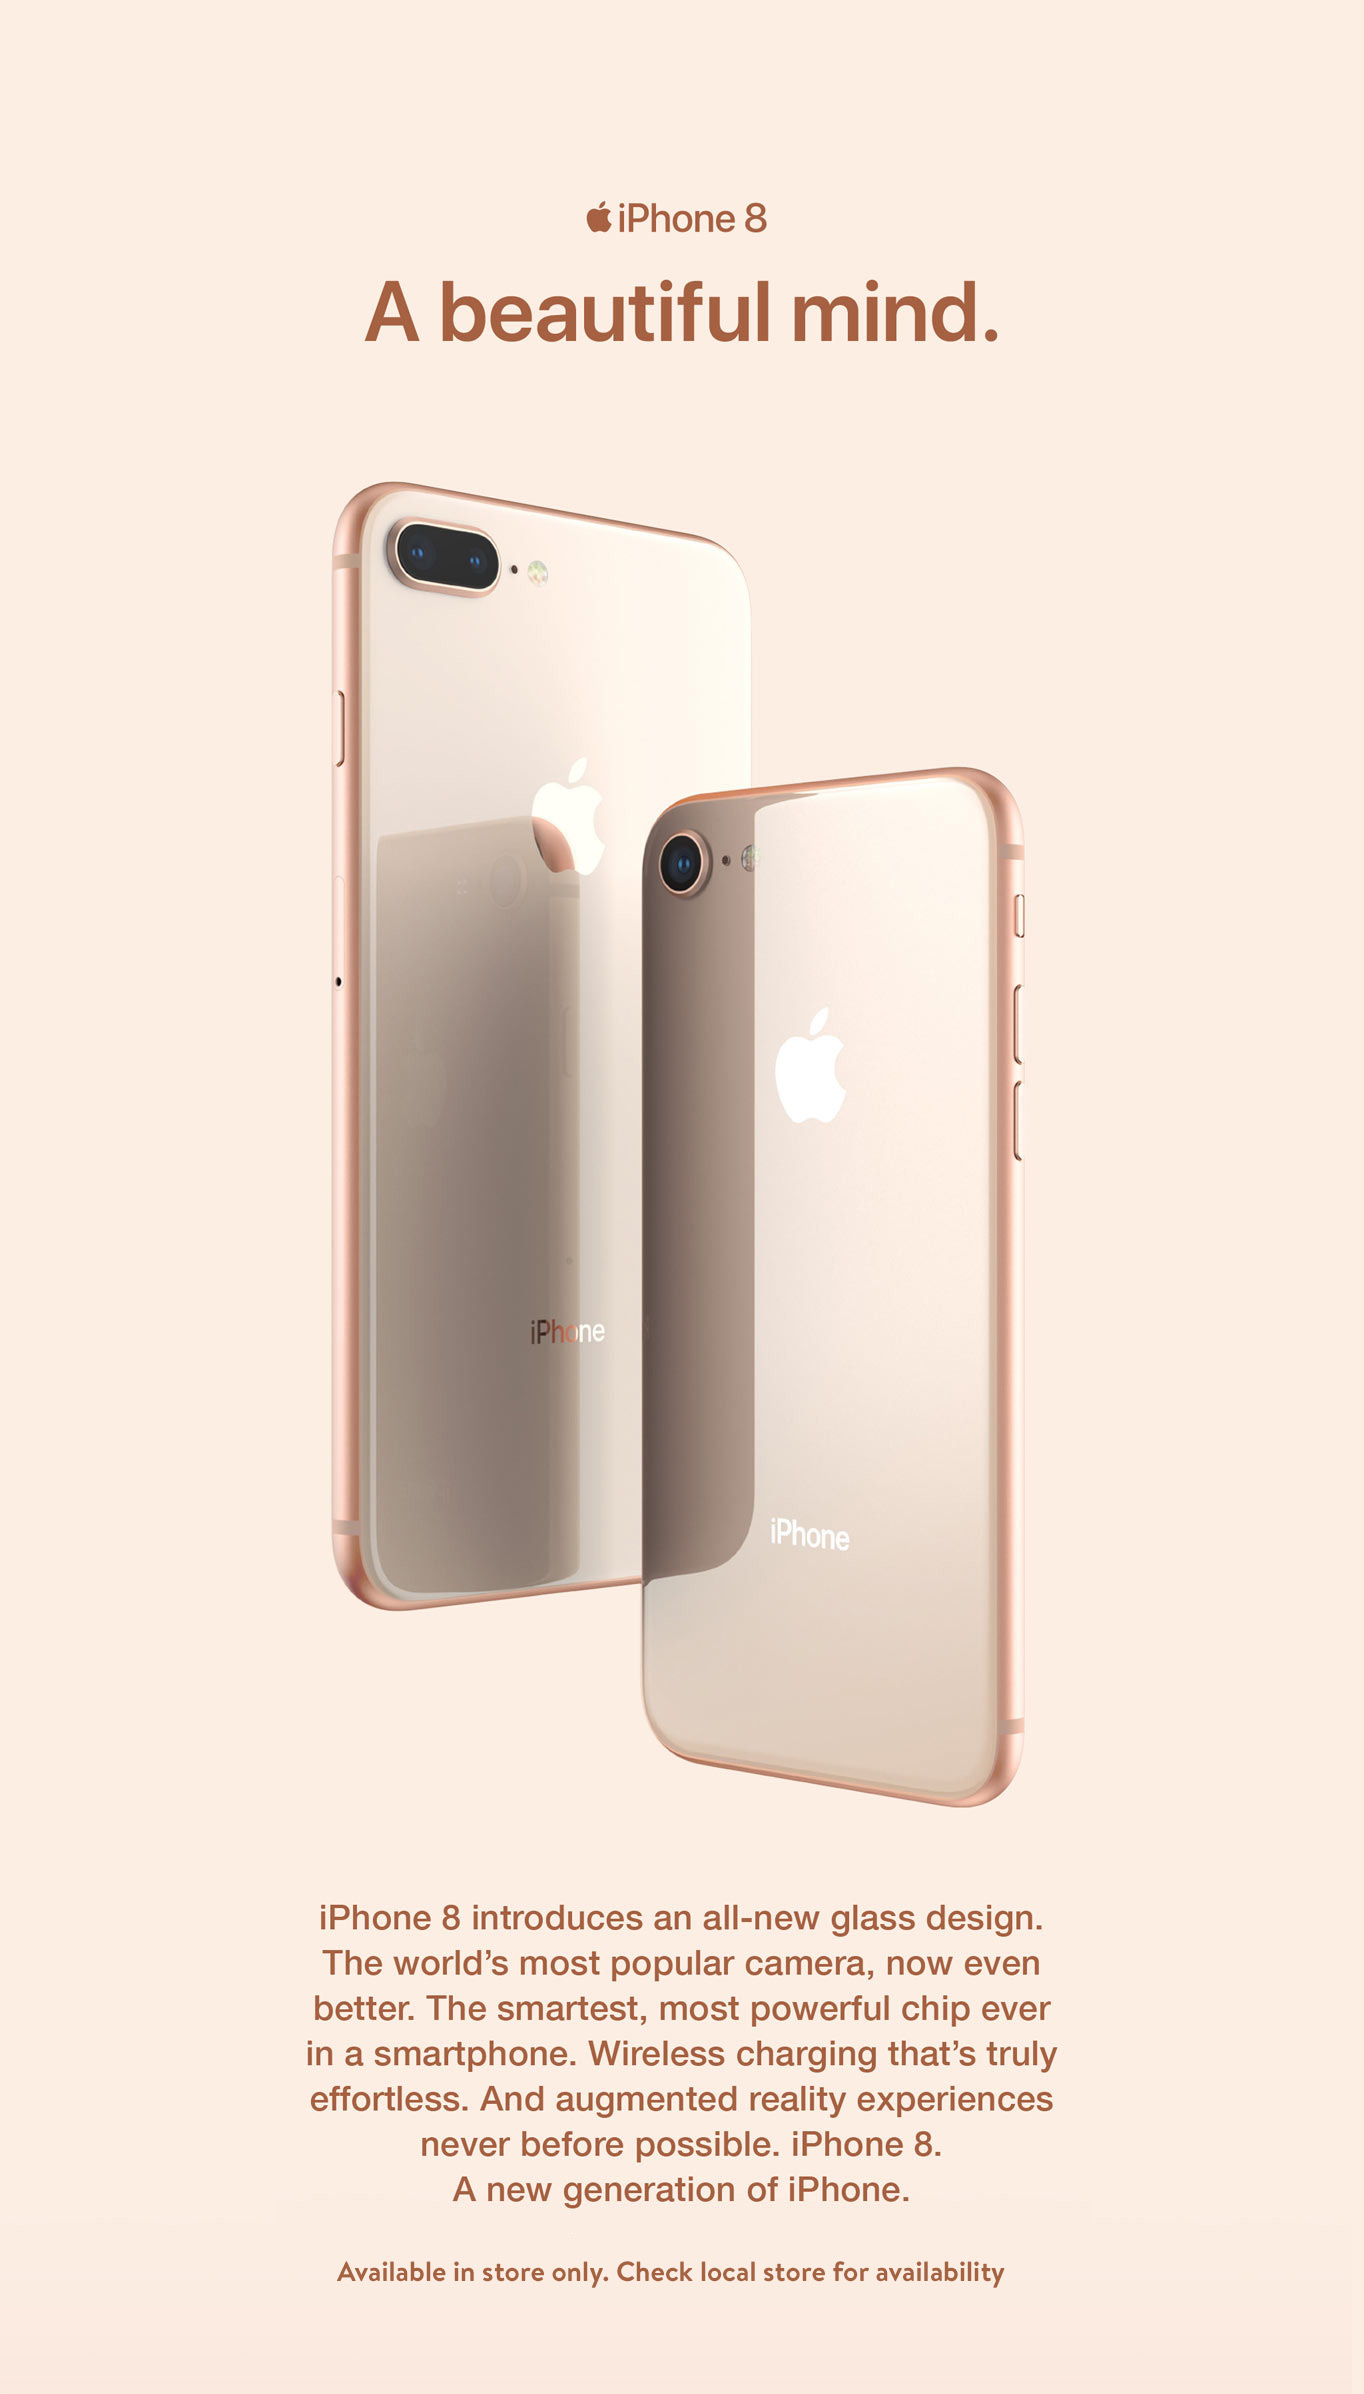 iPhone 8. A beautiful mind. iPhone 8 introduces an all-new glass design. The world's most popular carama, now even better. The smartest, most powerful chip ever in a smartphone. Wireless charging that's truly effortless. And augmented reality experiences never before possible. iPhone 8. A new generation of iPhone